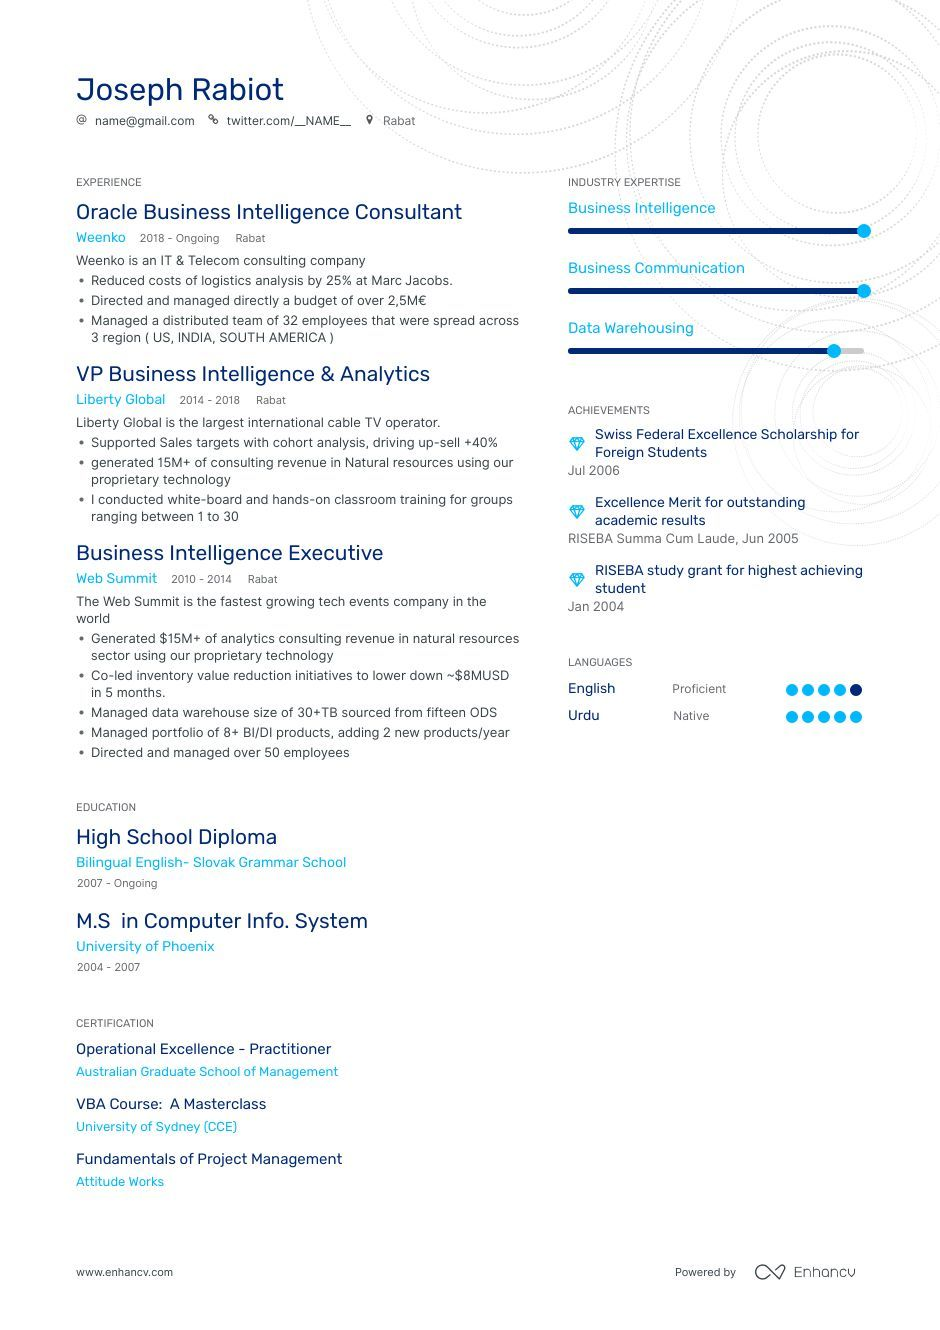 Business Intelligence Resume Examples + Expert Advice